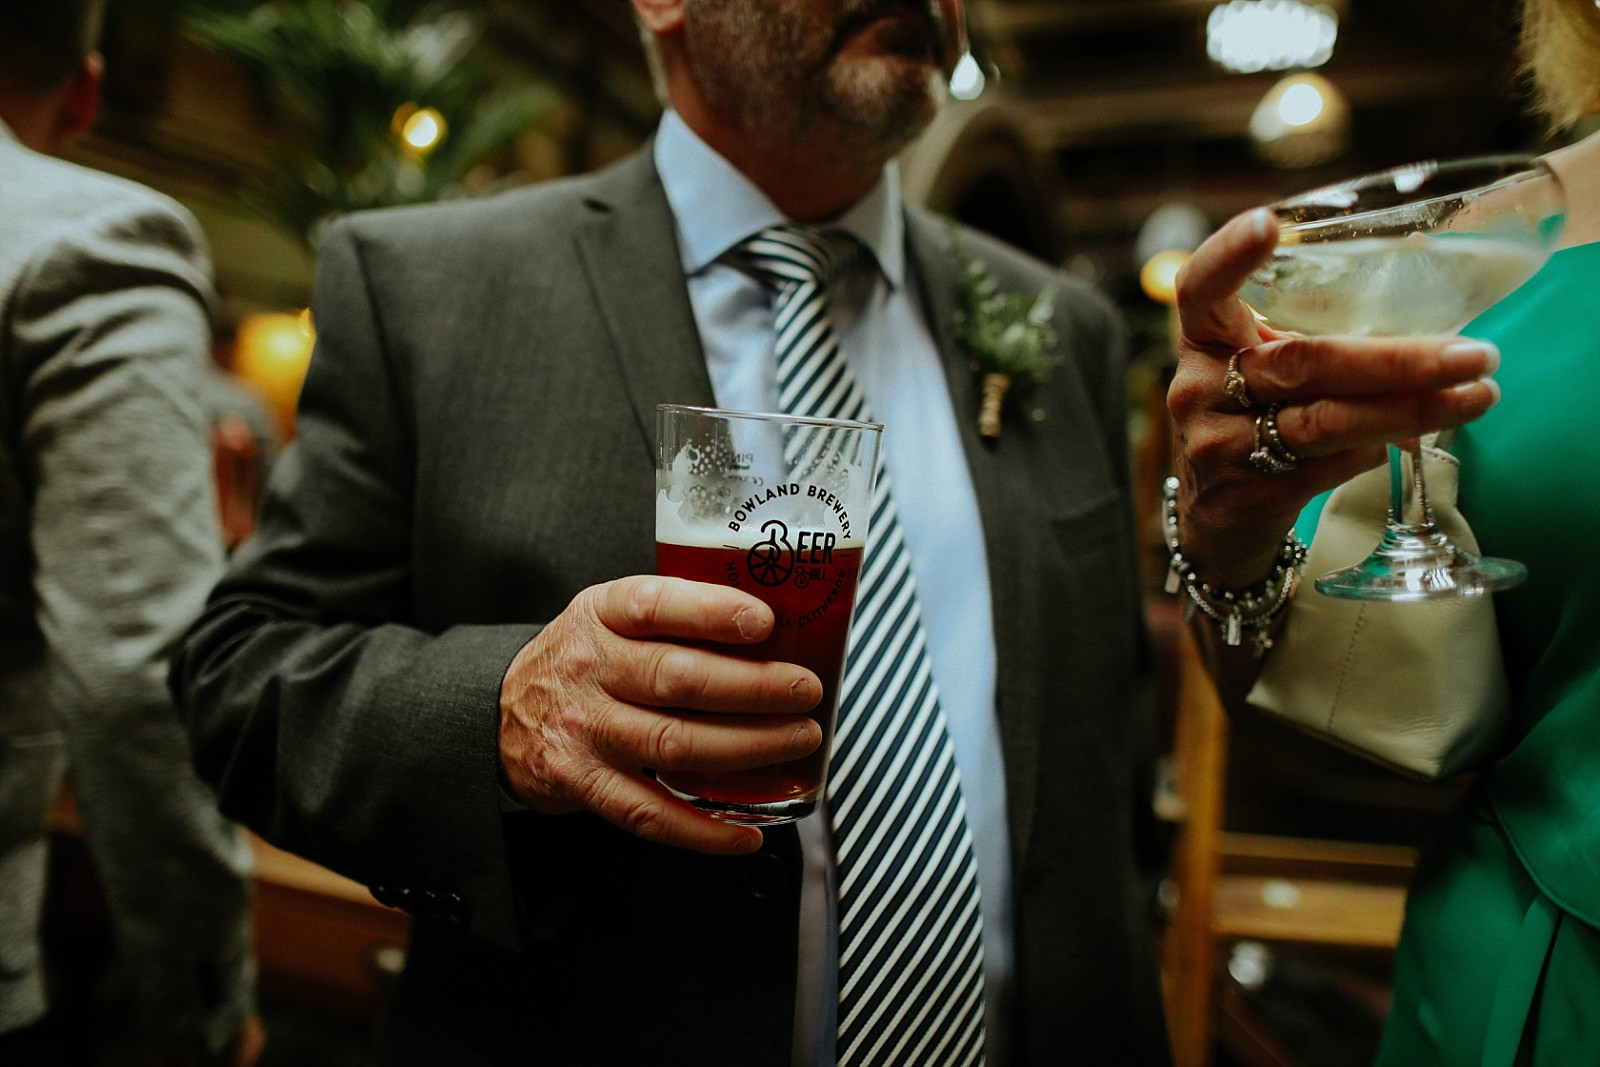 Man holding a bowland beer pint glass